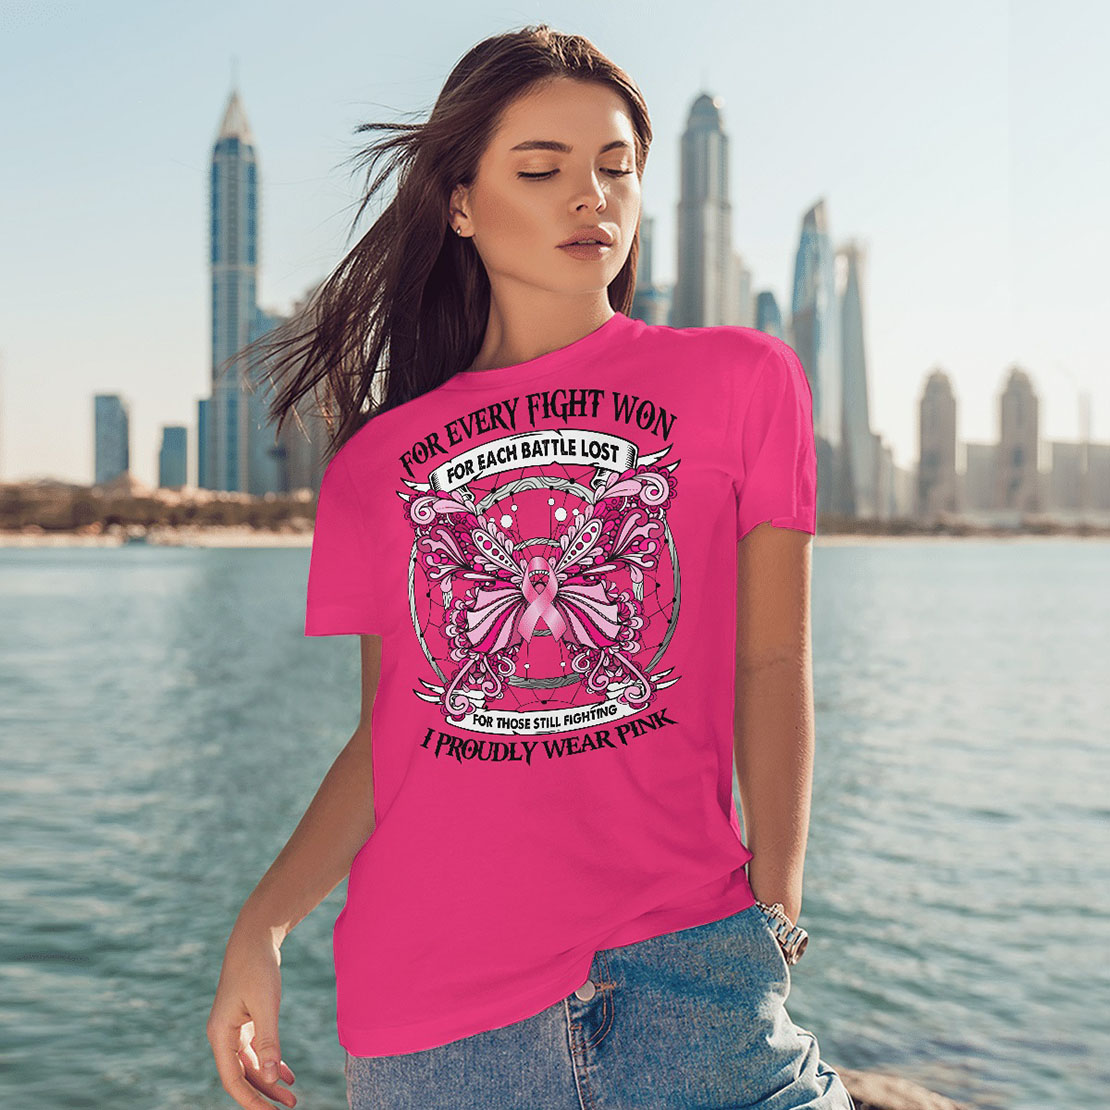 Breast-cancer-awareness-For-every-fight-won-for-each-battle-lost-shirt2-2